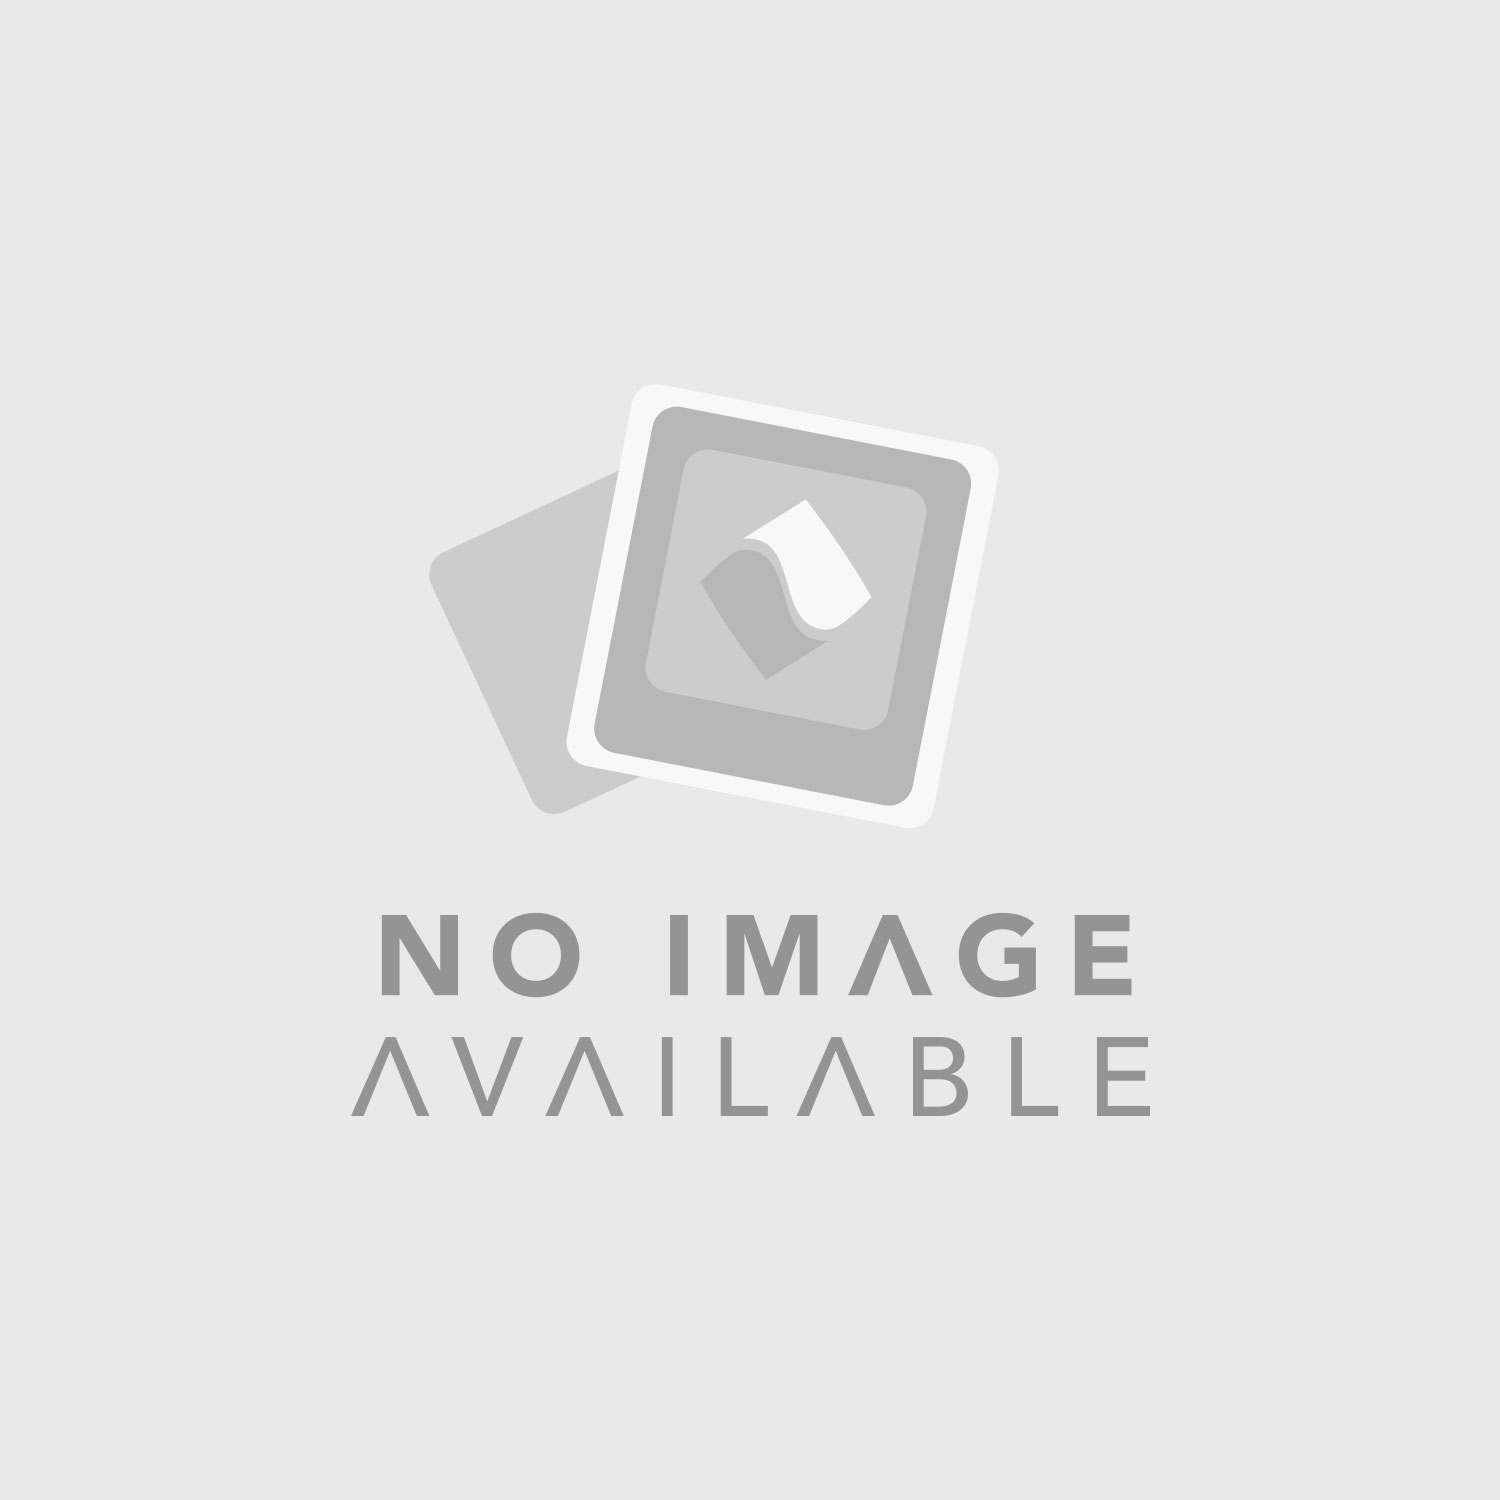 D'Addario EJ17 Acoustic Guitar Strings (.013-.056)